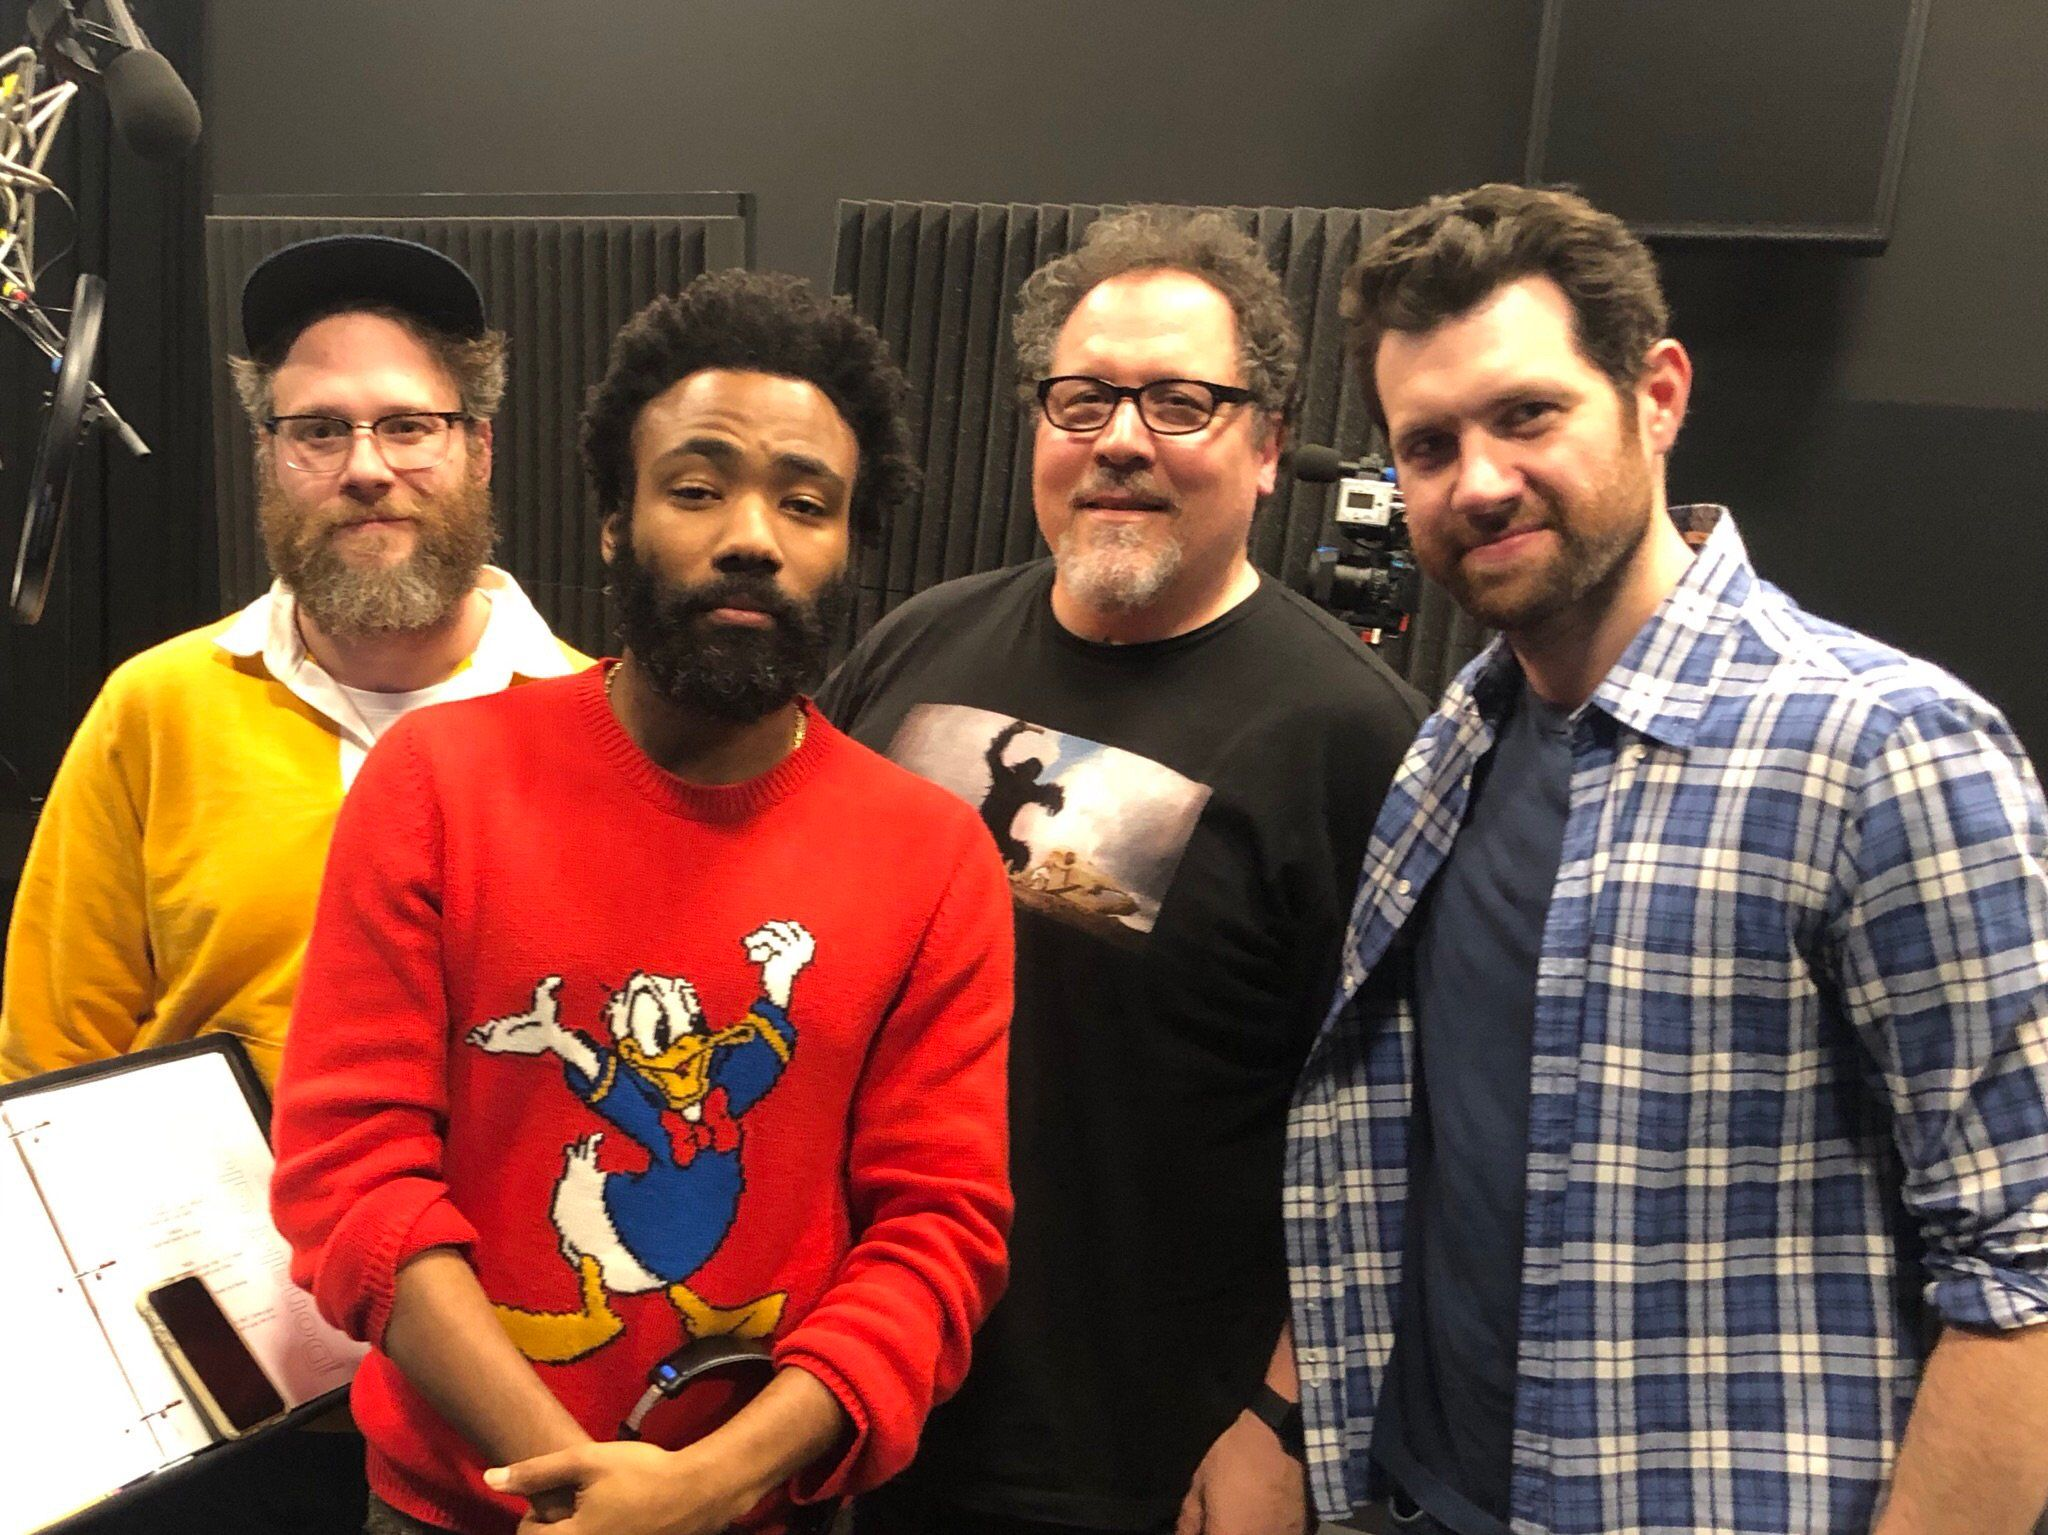 The Lion King Cast Image Includes Donald Glover And Jon